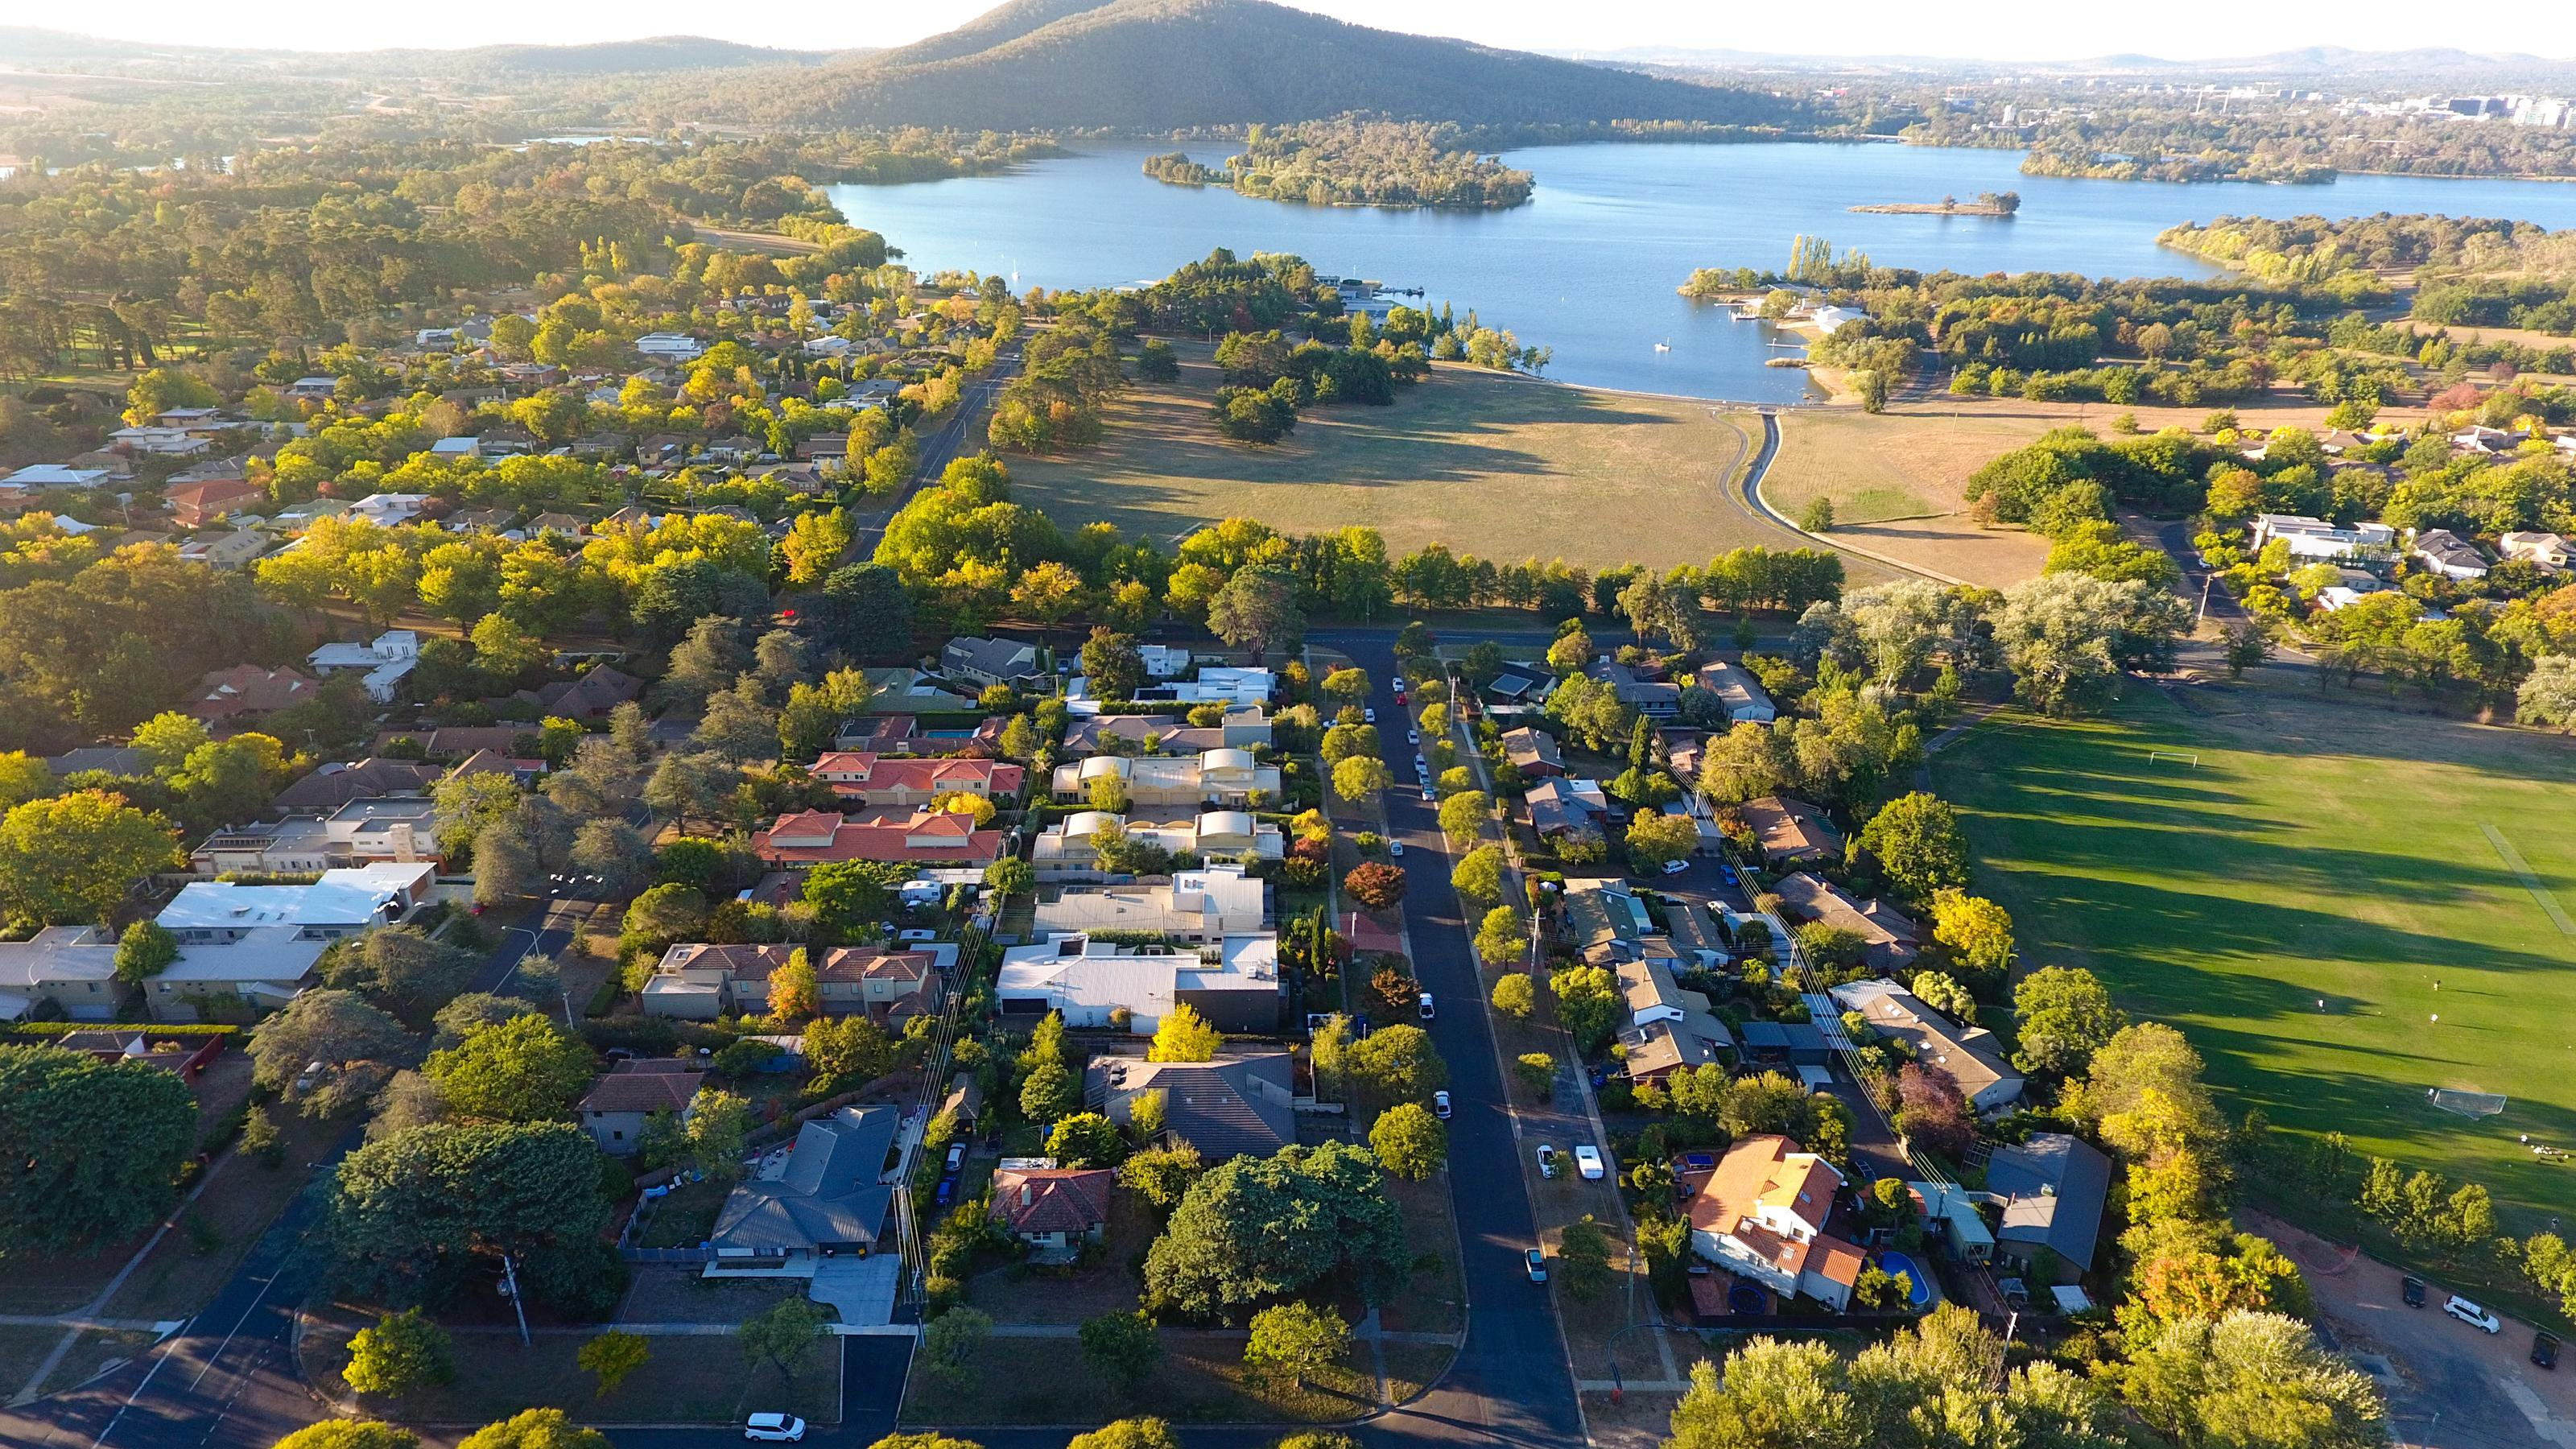 Australia's most liveable city has been named, and it's a surprise